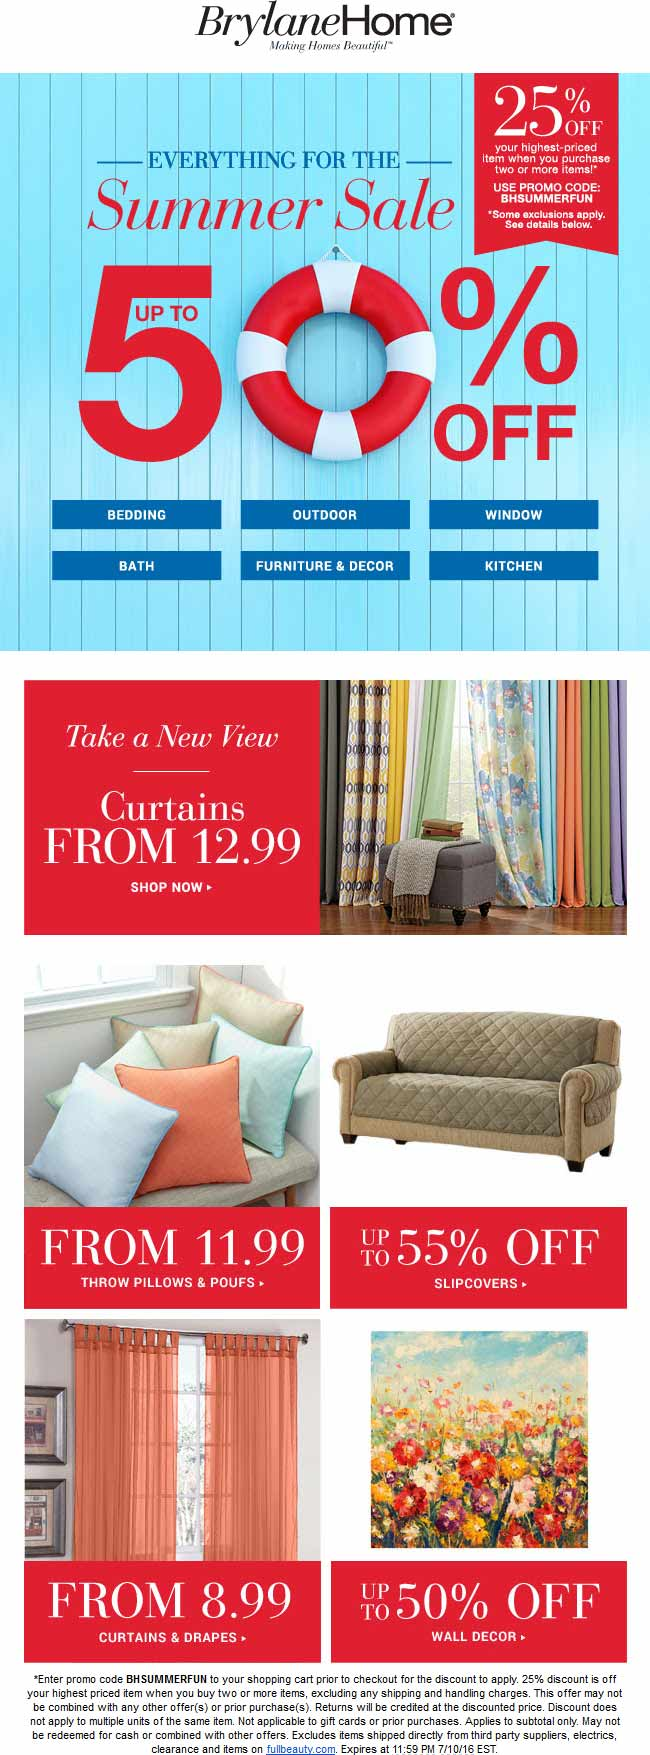 Brylane Home Coupon February 2017 25% off a couple items online at Brylane Home via promo code BHSUMMERFUN